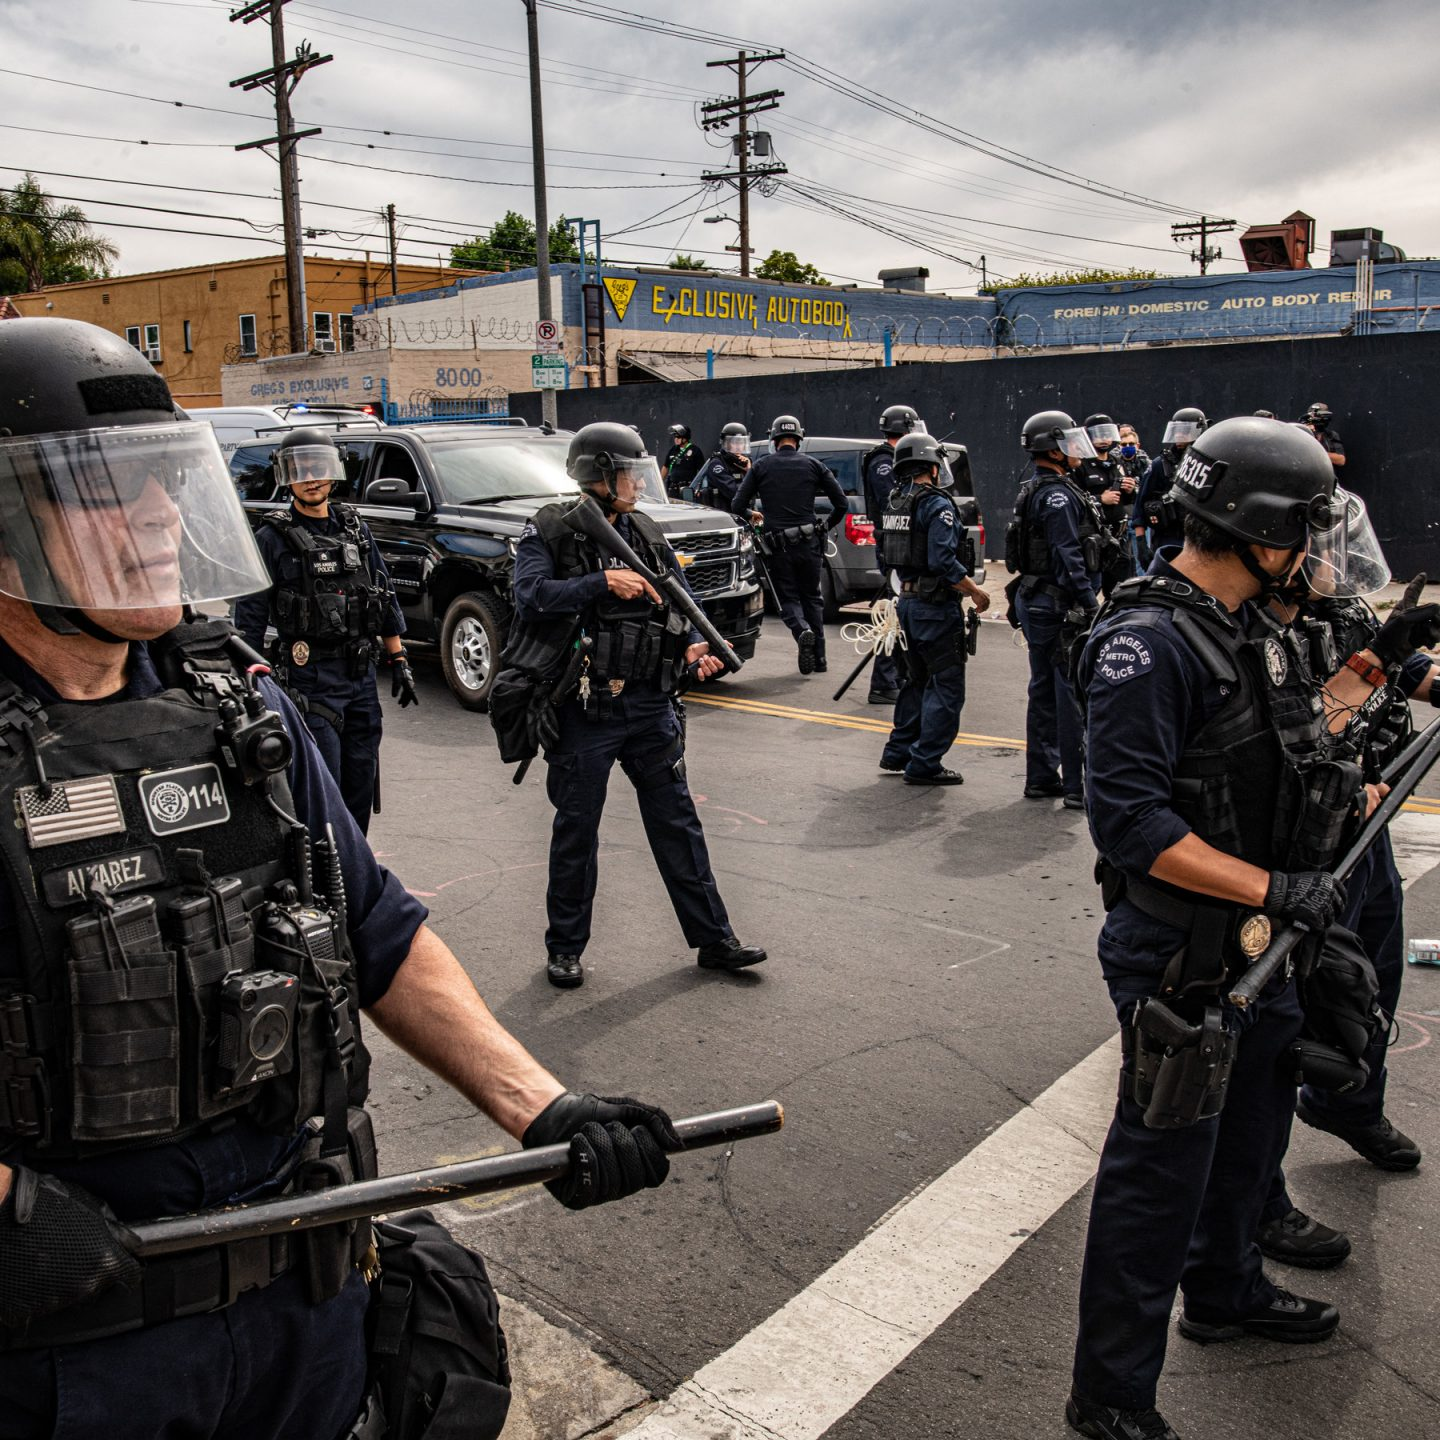 Violence of policing